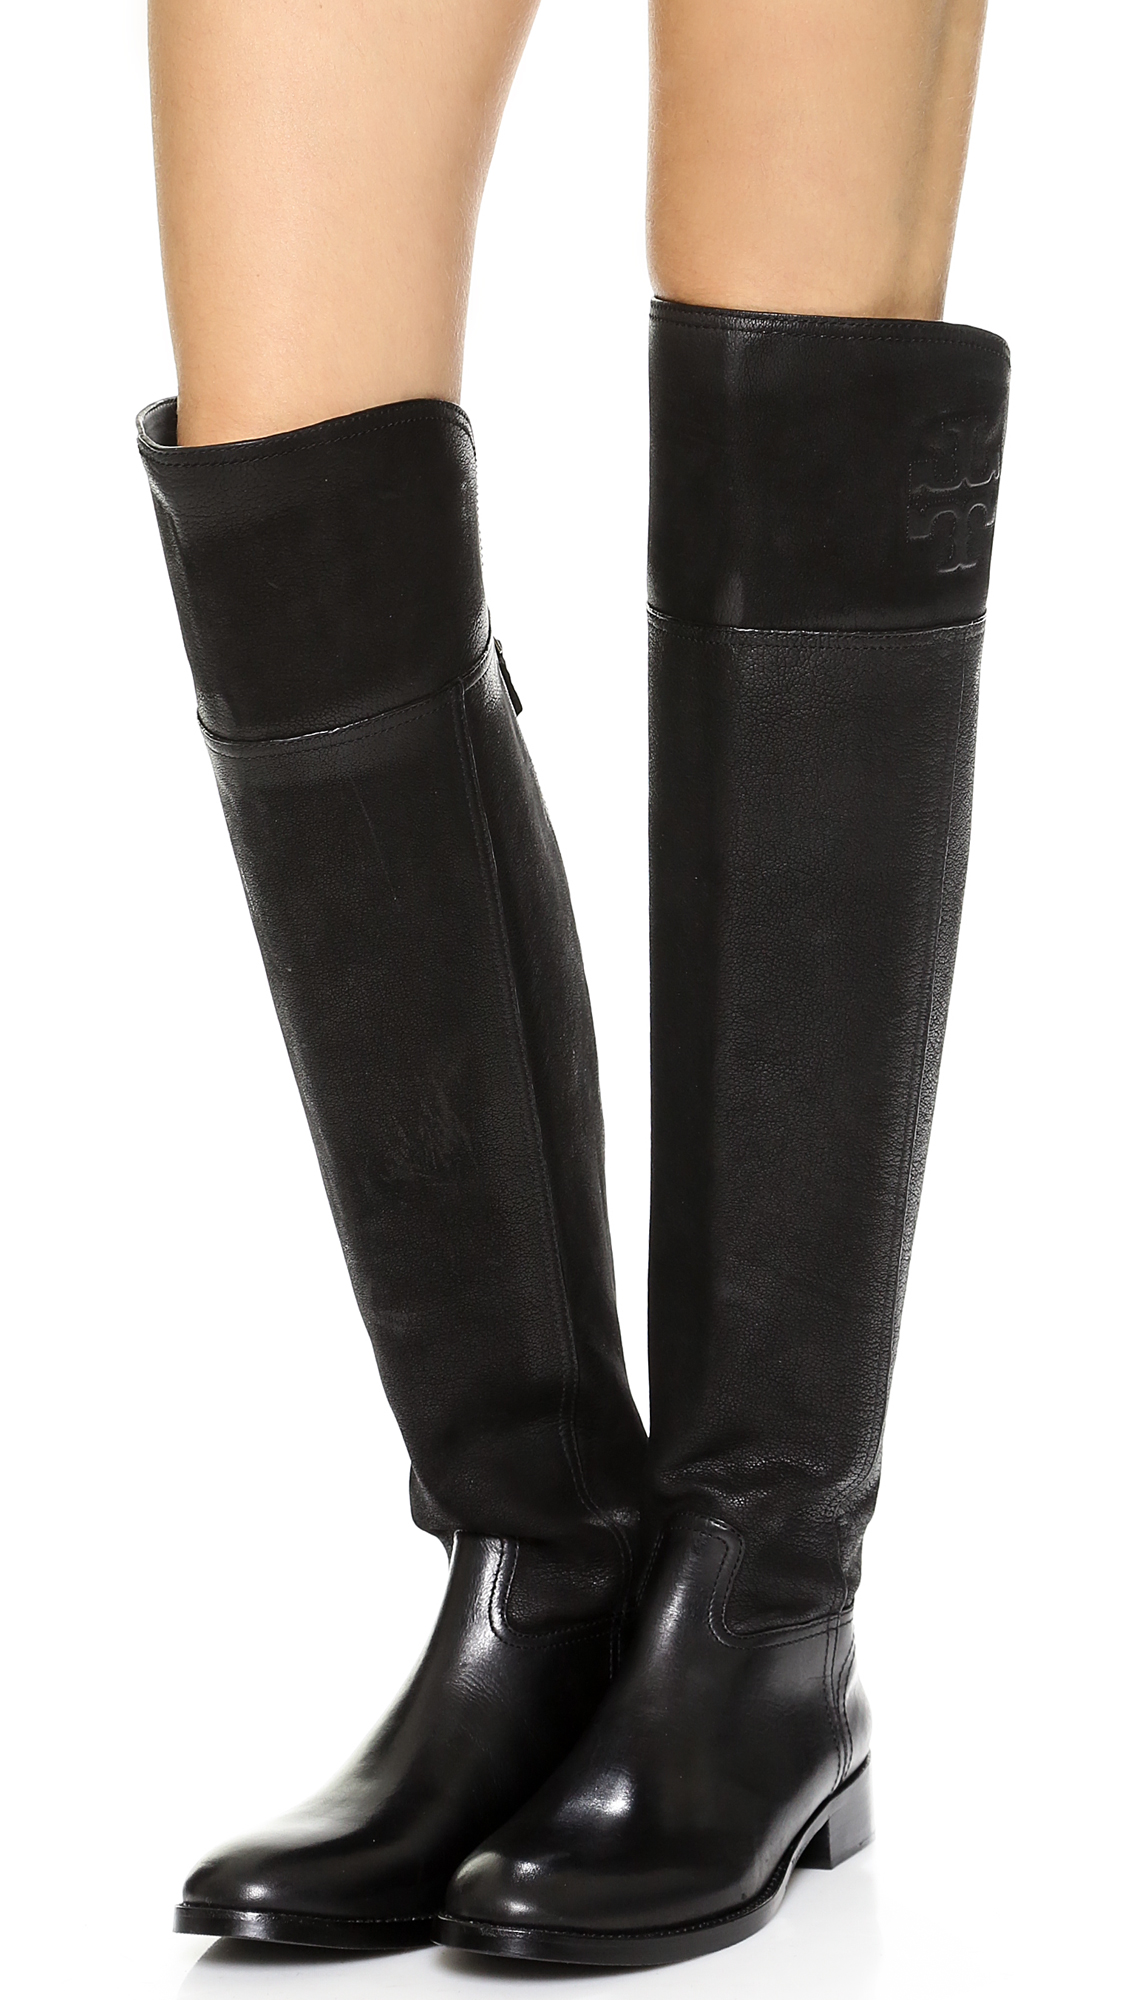 Tory Burch Simone Over-The-Knee Boots sale 2014 new low shipping sale online clearance hot sale discount eastbay 9Zvmj